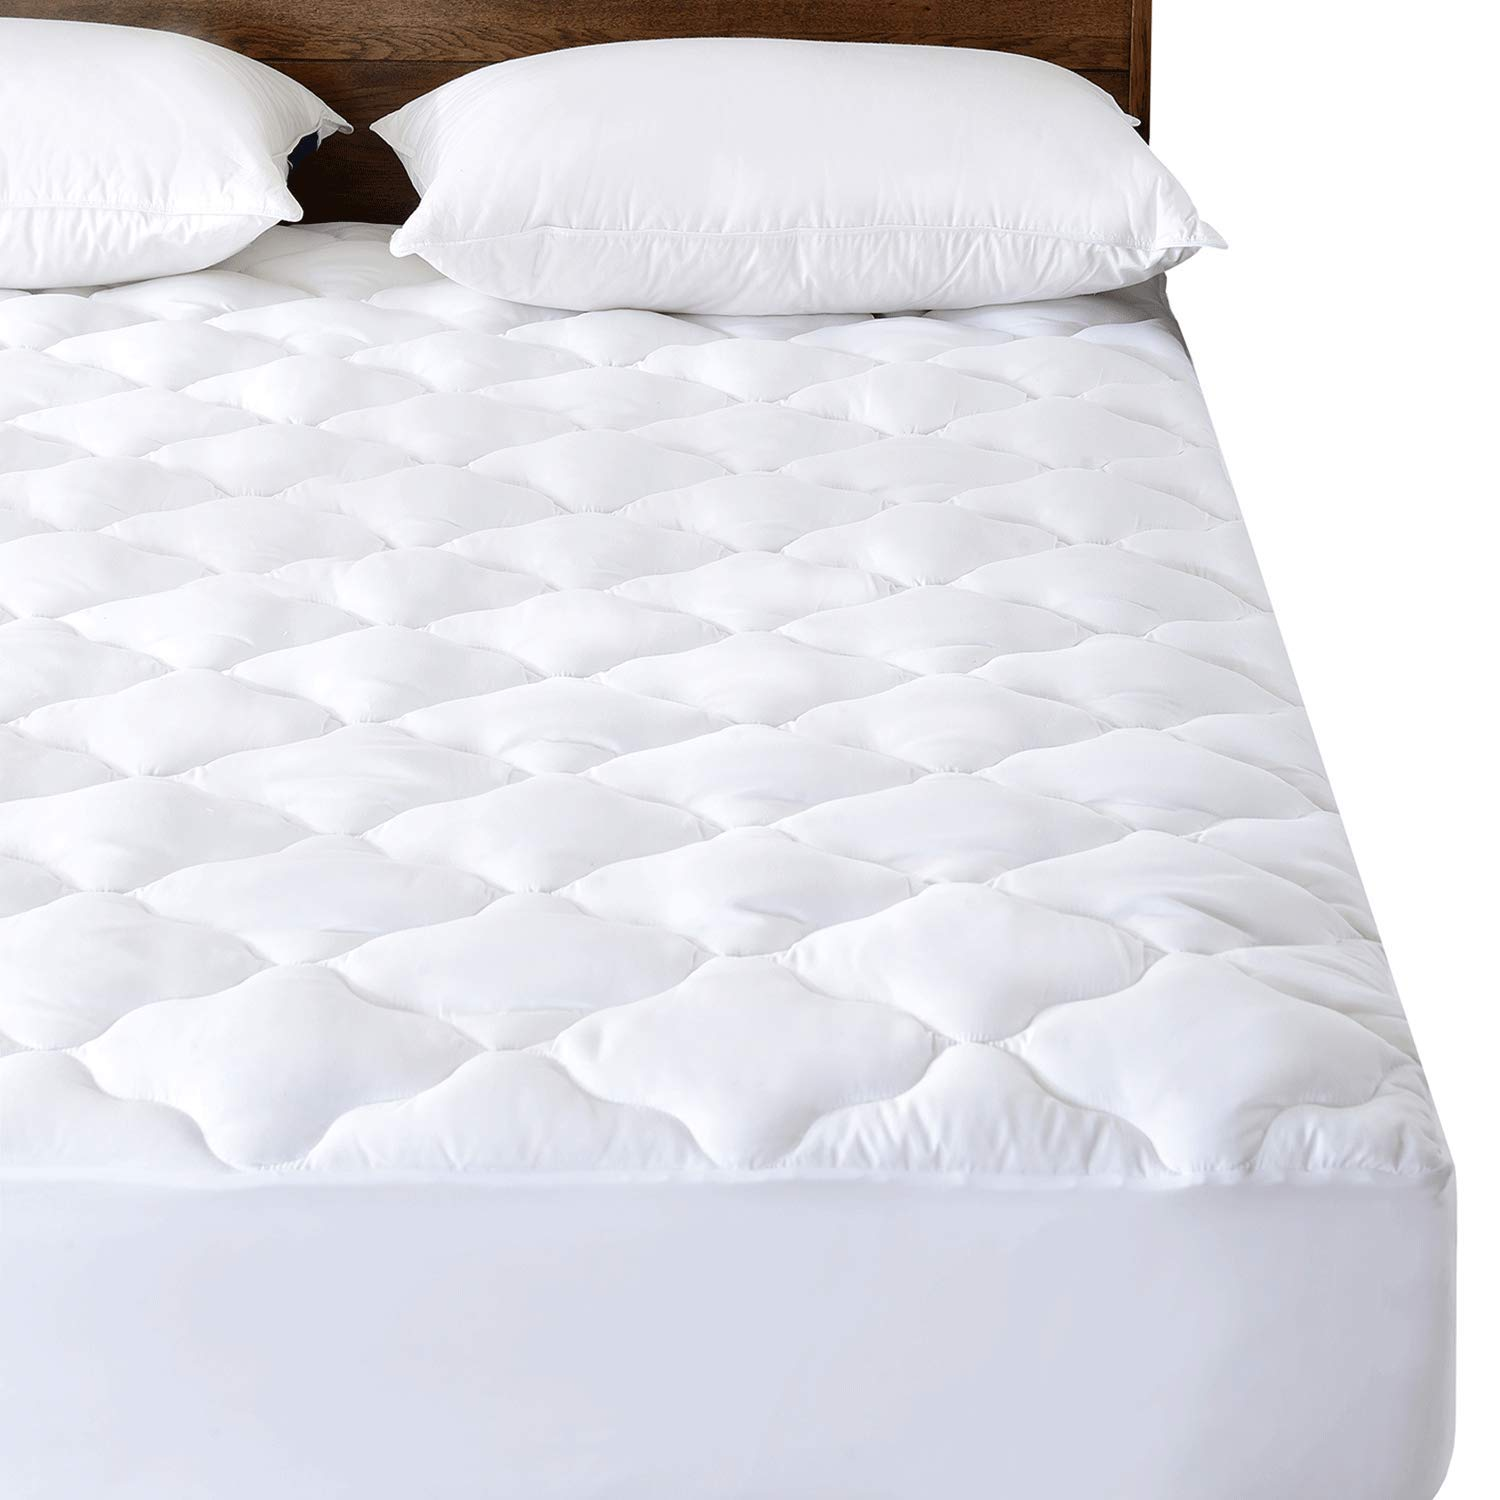 Basic Beyond Quilted Waterproof Mattress Pad